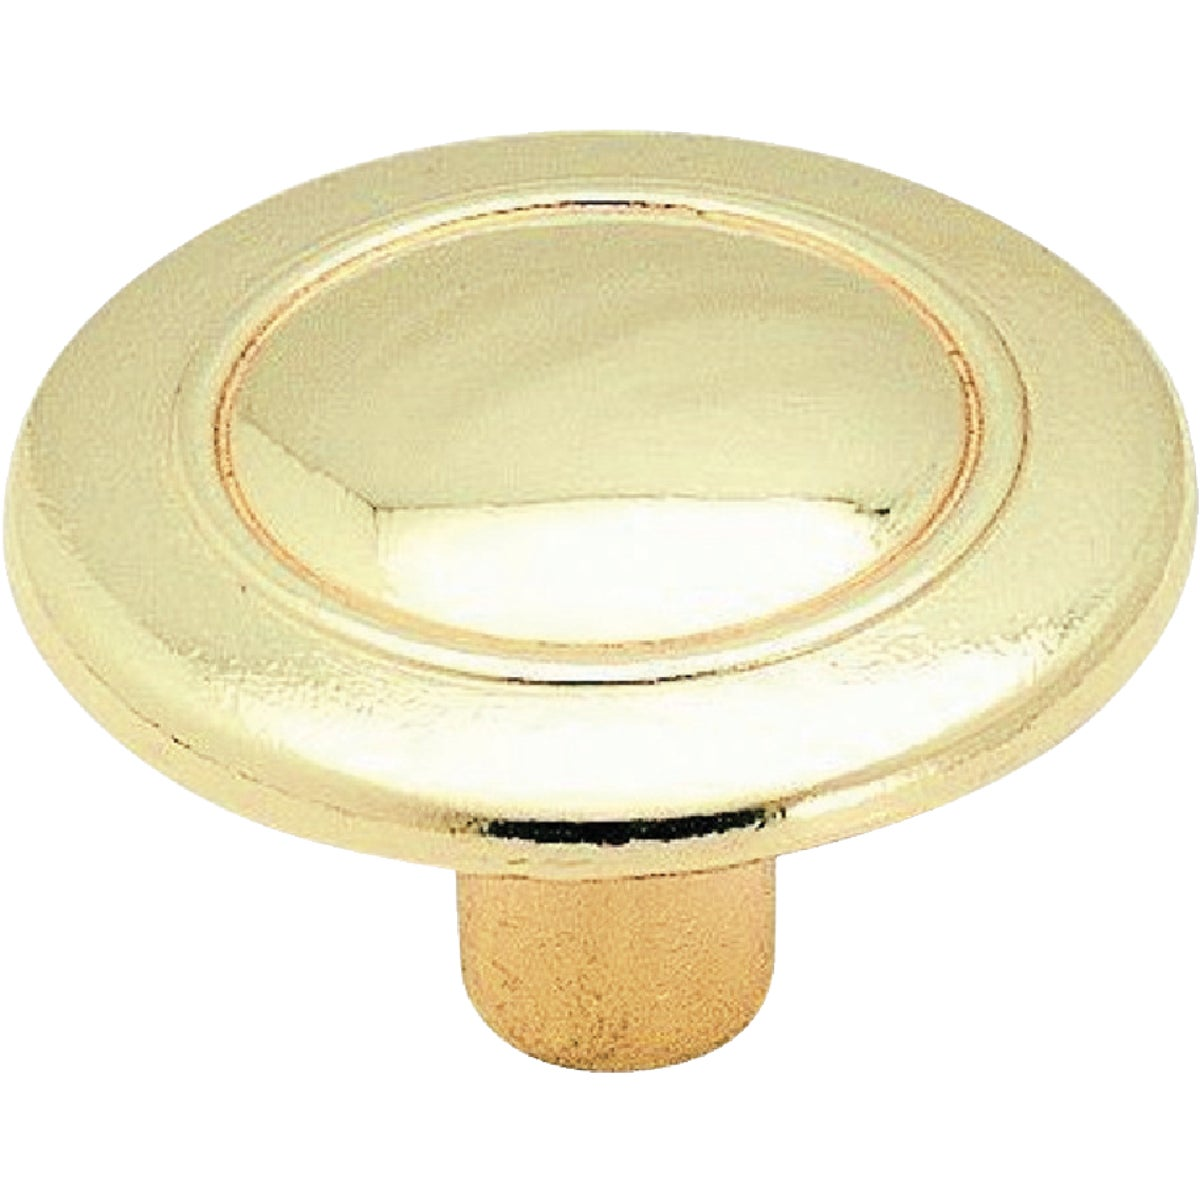 "1-1/4"" PB KNOB - 256PB by Amerock Corporation"